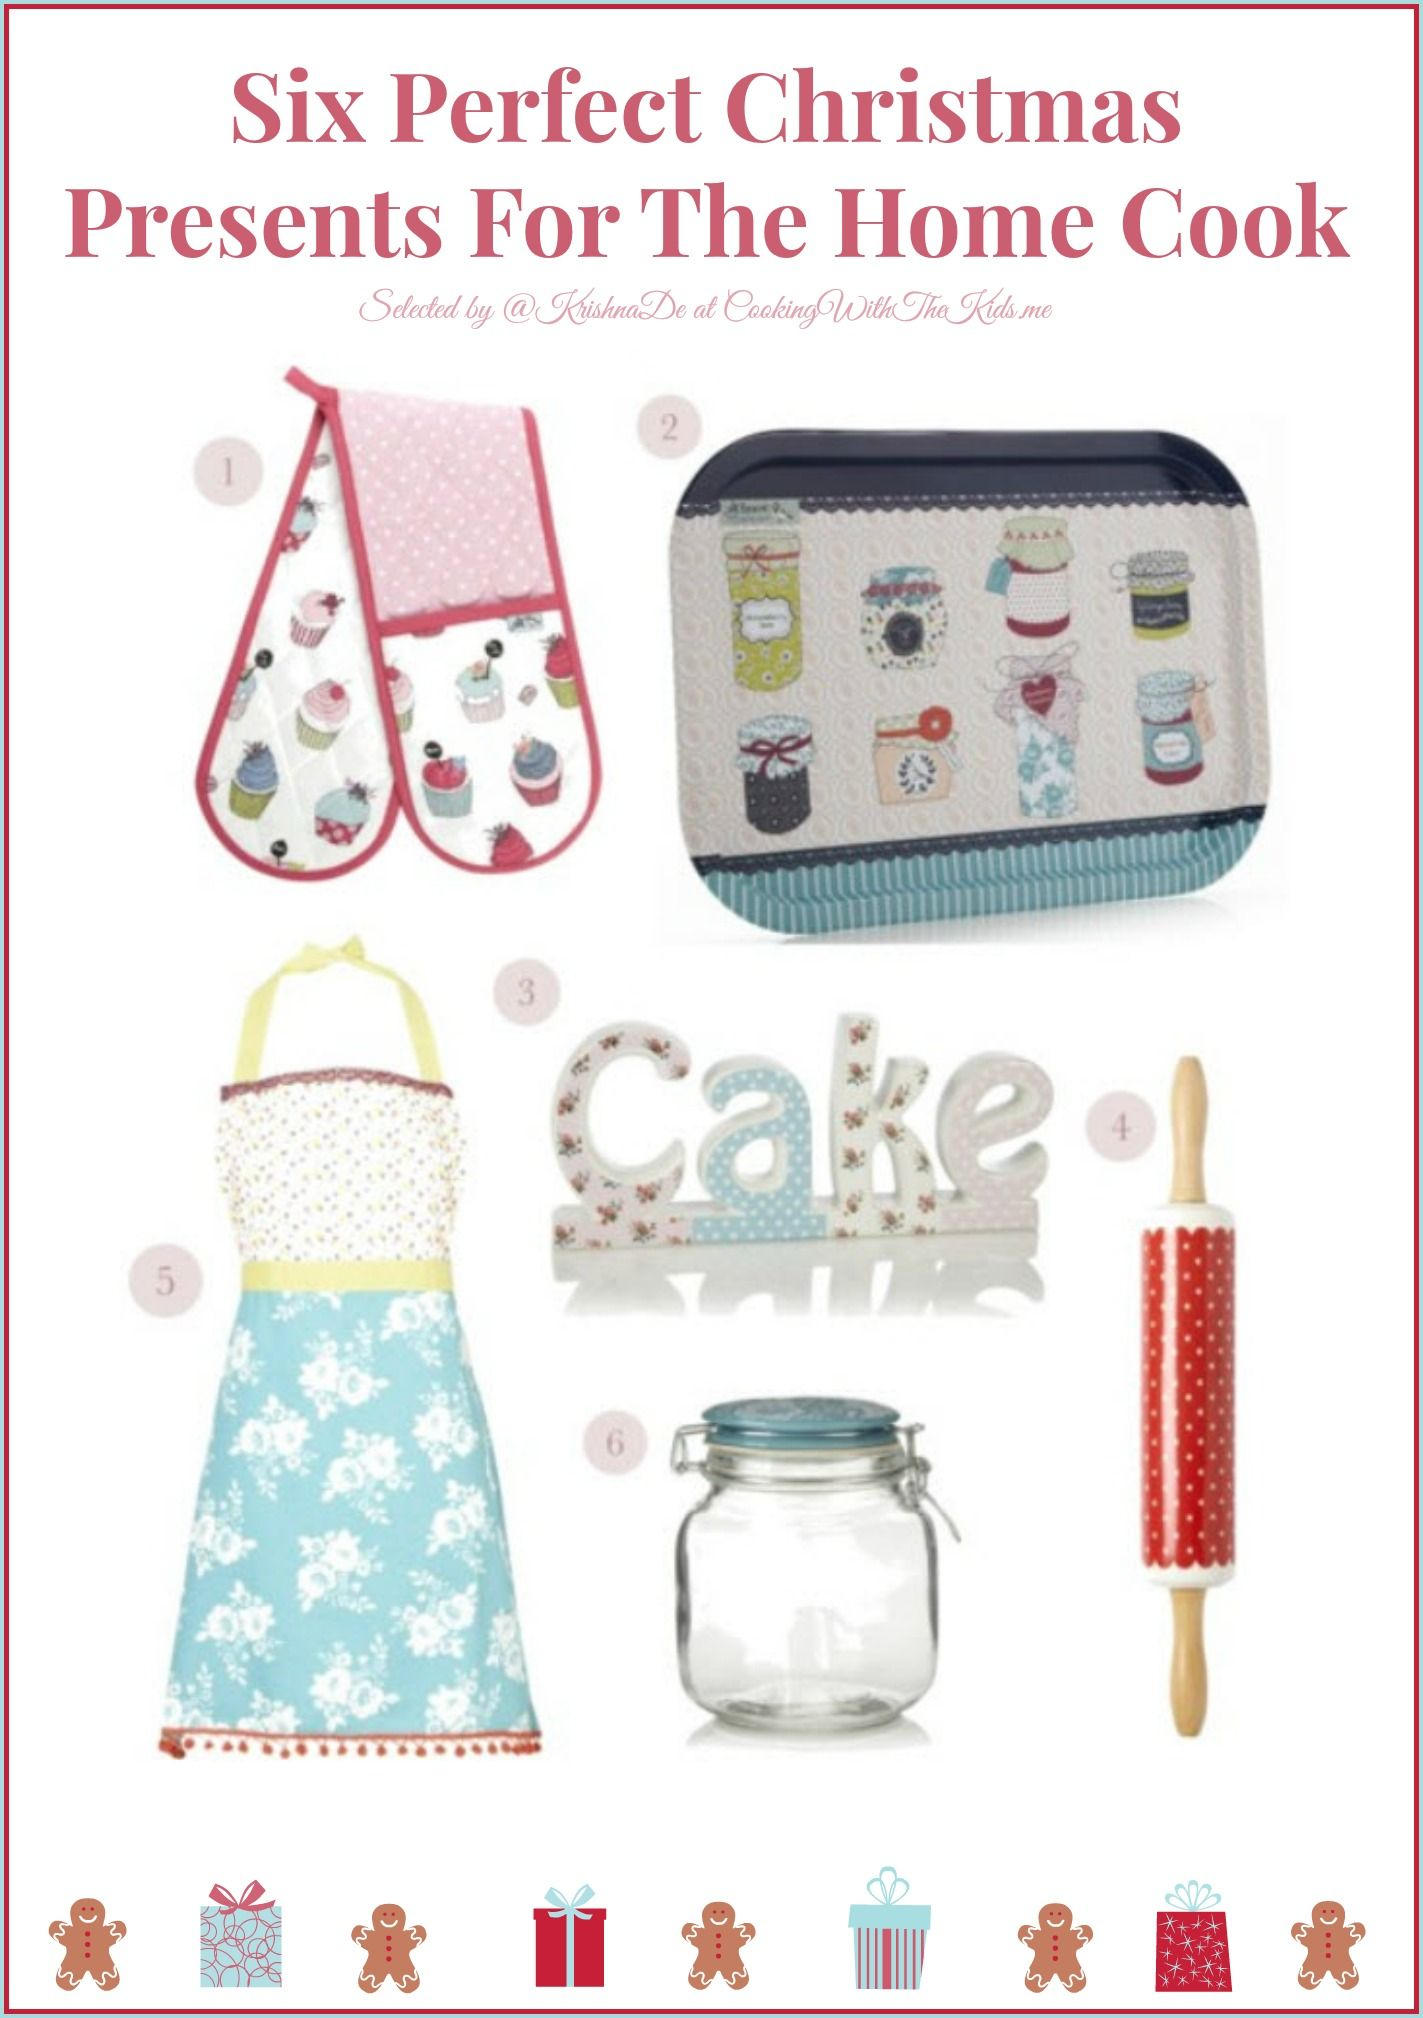 Six Christmas gift ideas for home cooks from Debenhams Ireland ...